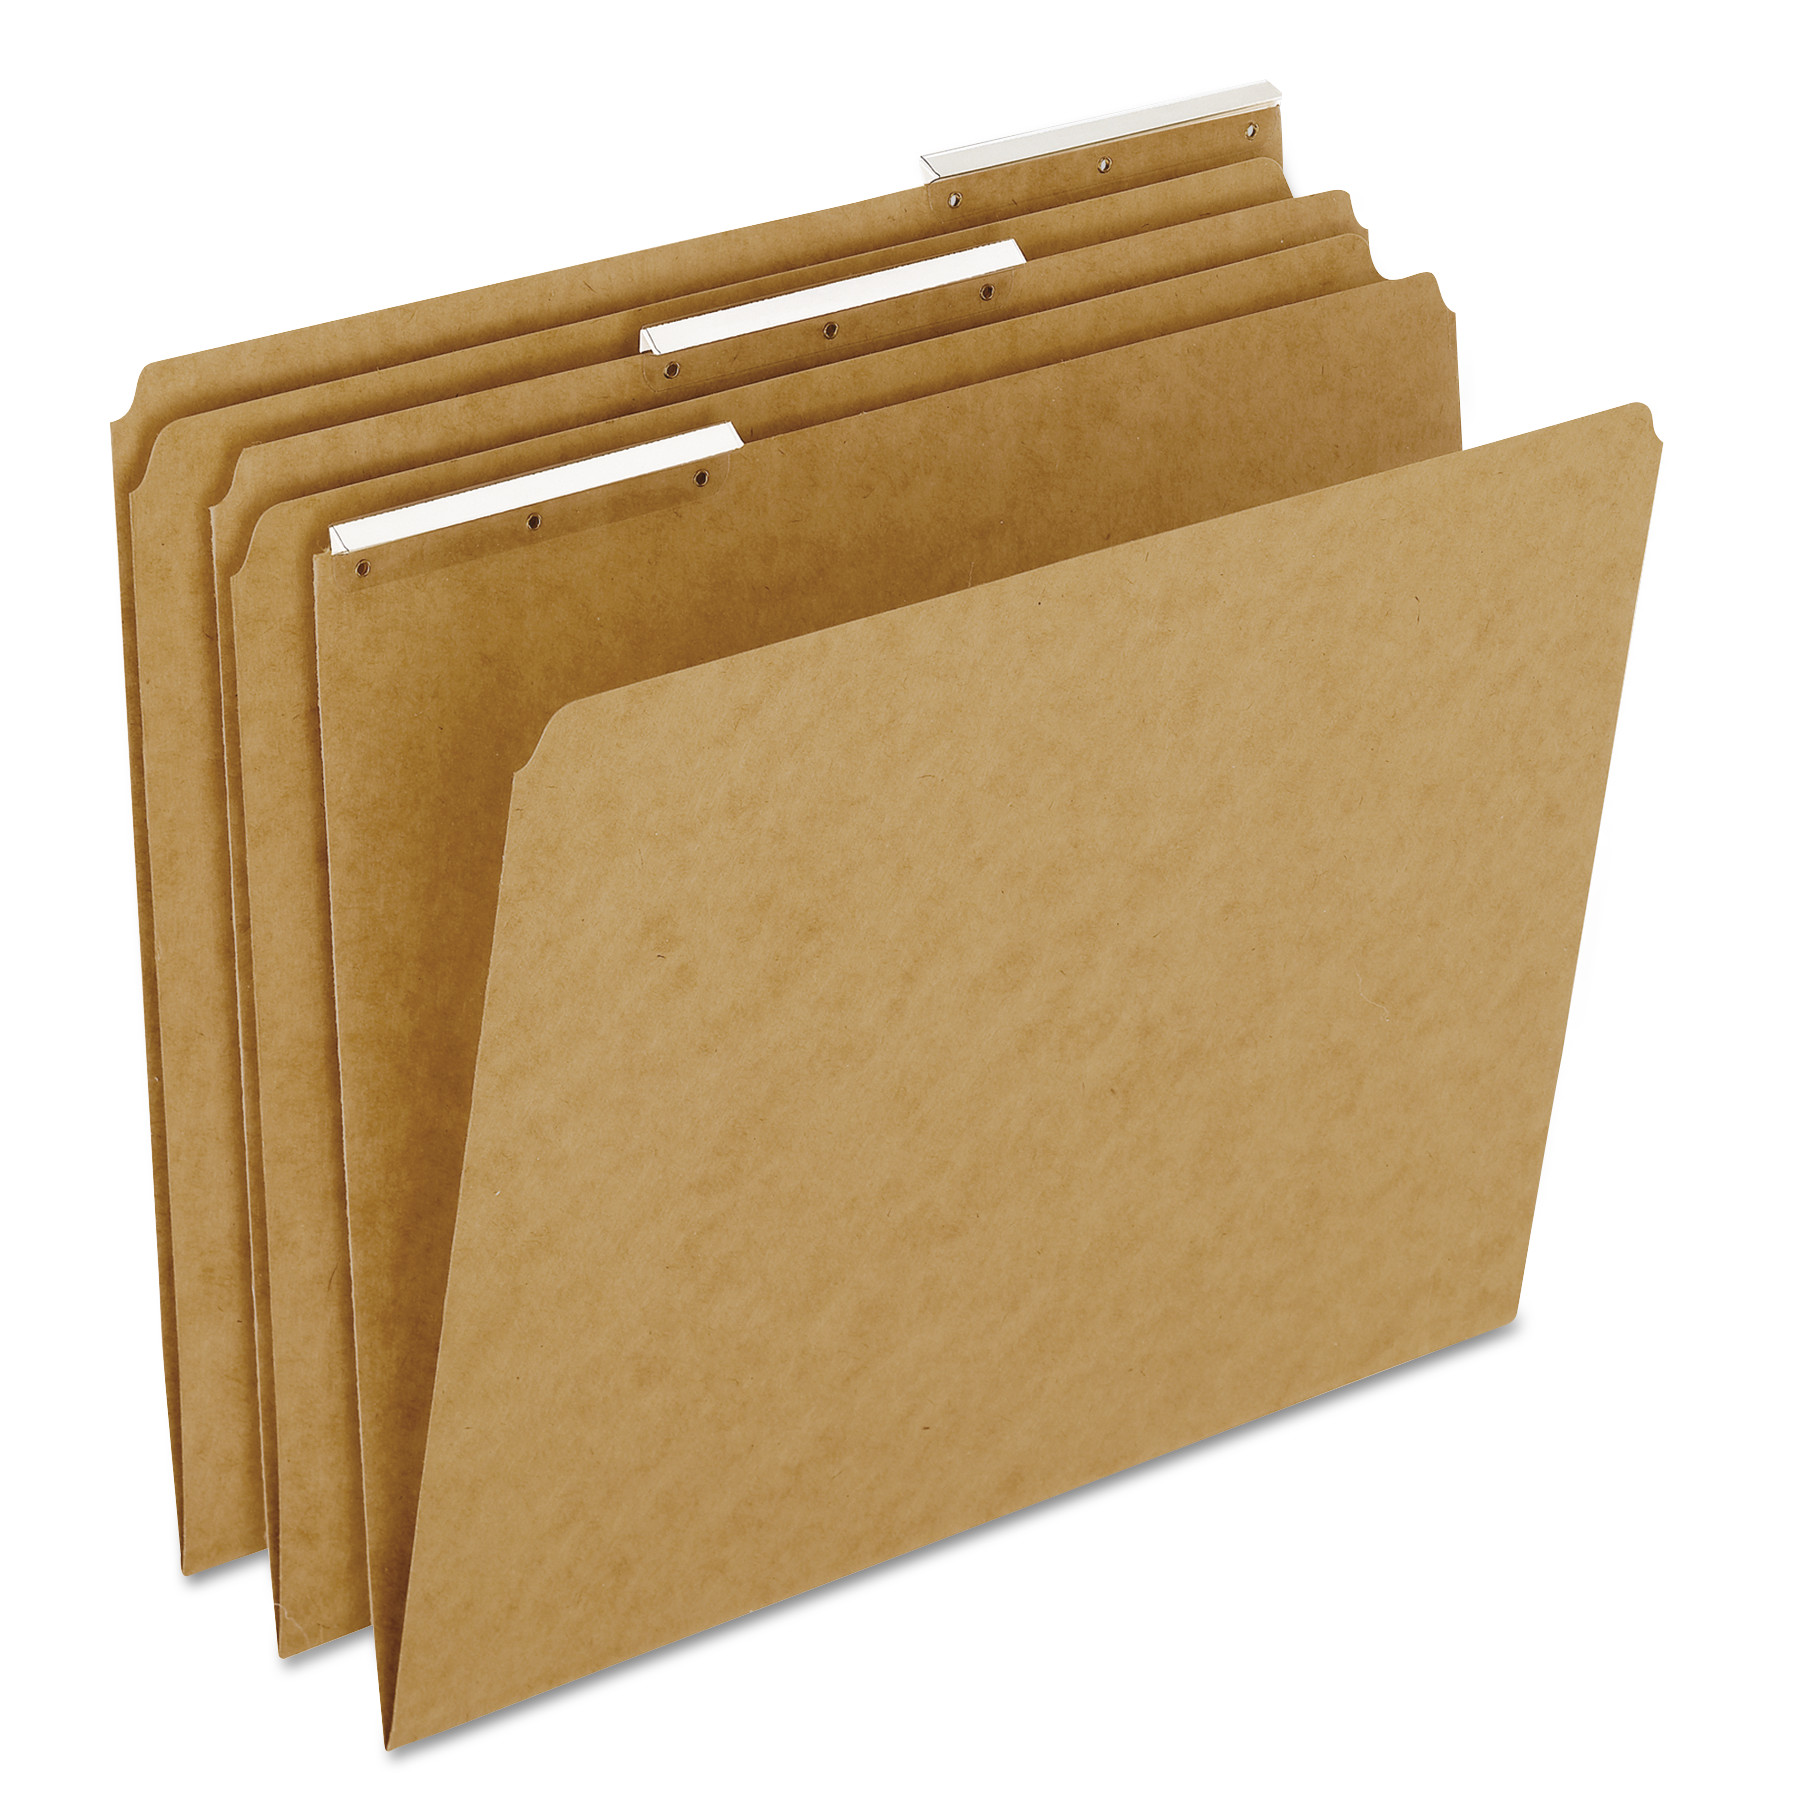 Pendaflex Kraft Angled Plastic Tab File Folders, 1/3 Cut Top Tab, Letter, Brown, 50/Box -PFXAC18213